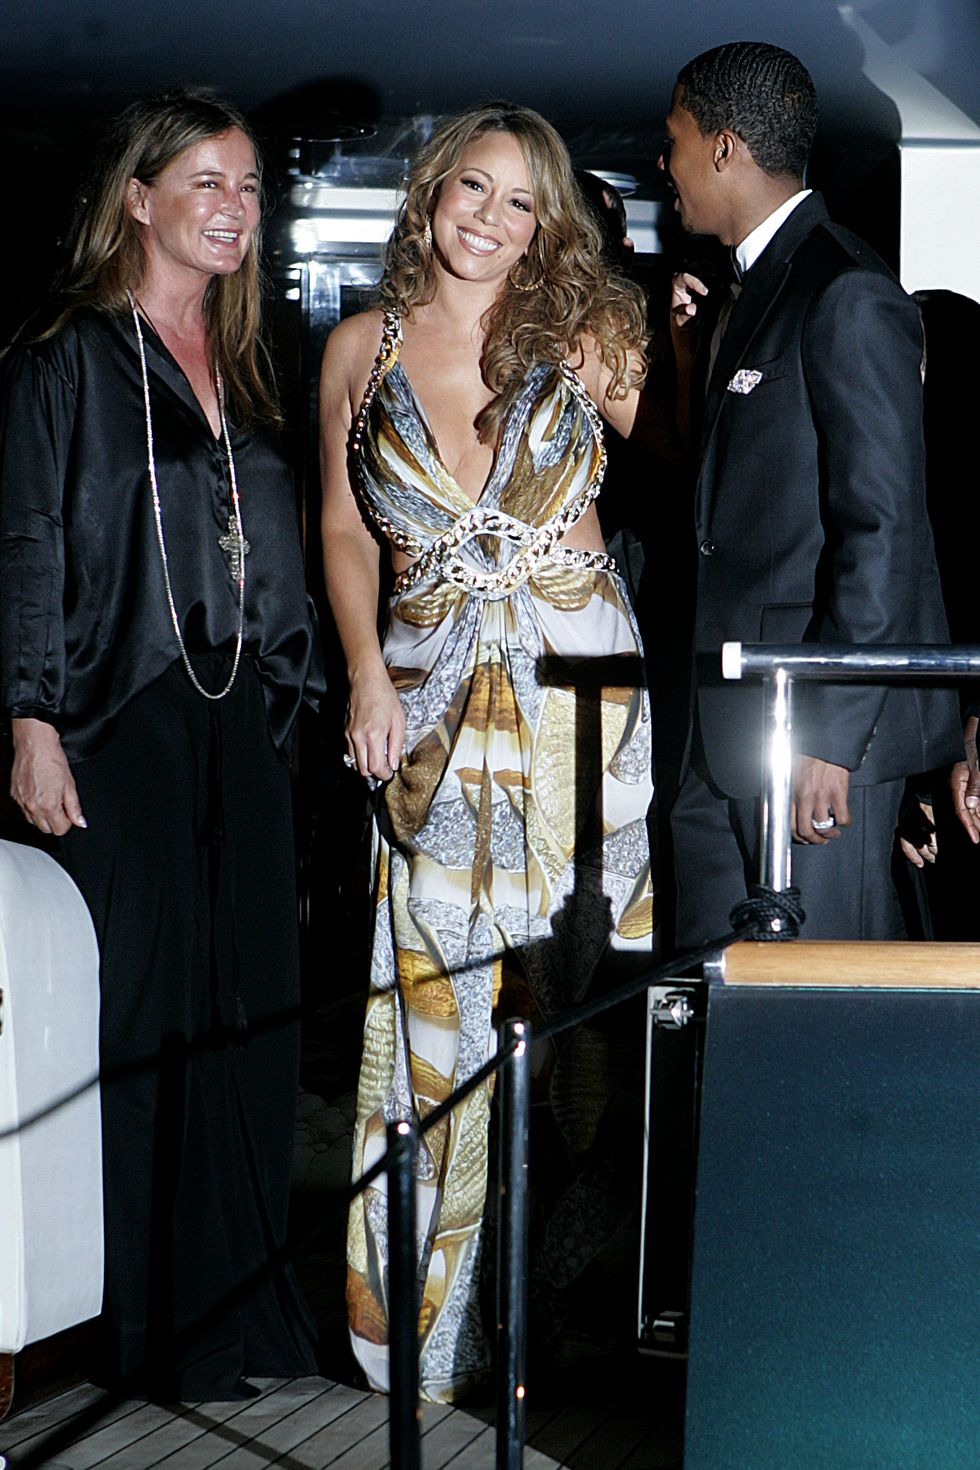 mariah-carey-at-party-on-robert-cavallis-yacht-in-cannes-03